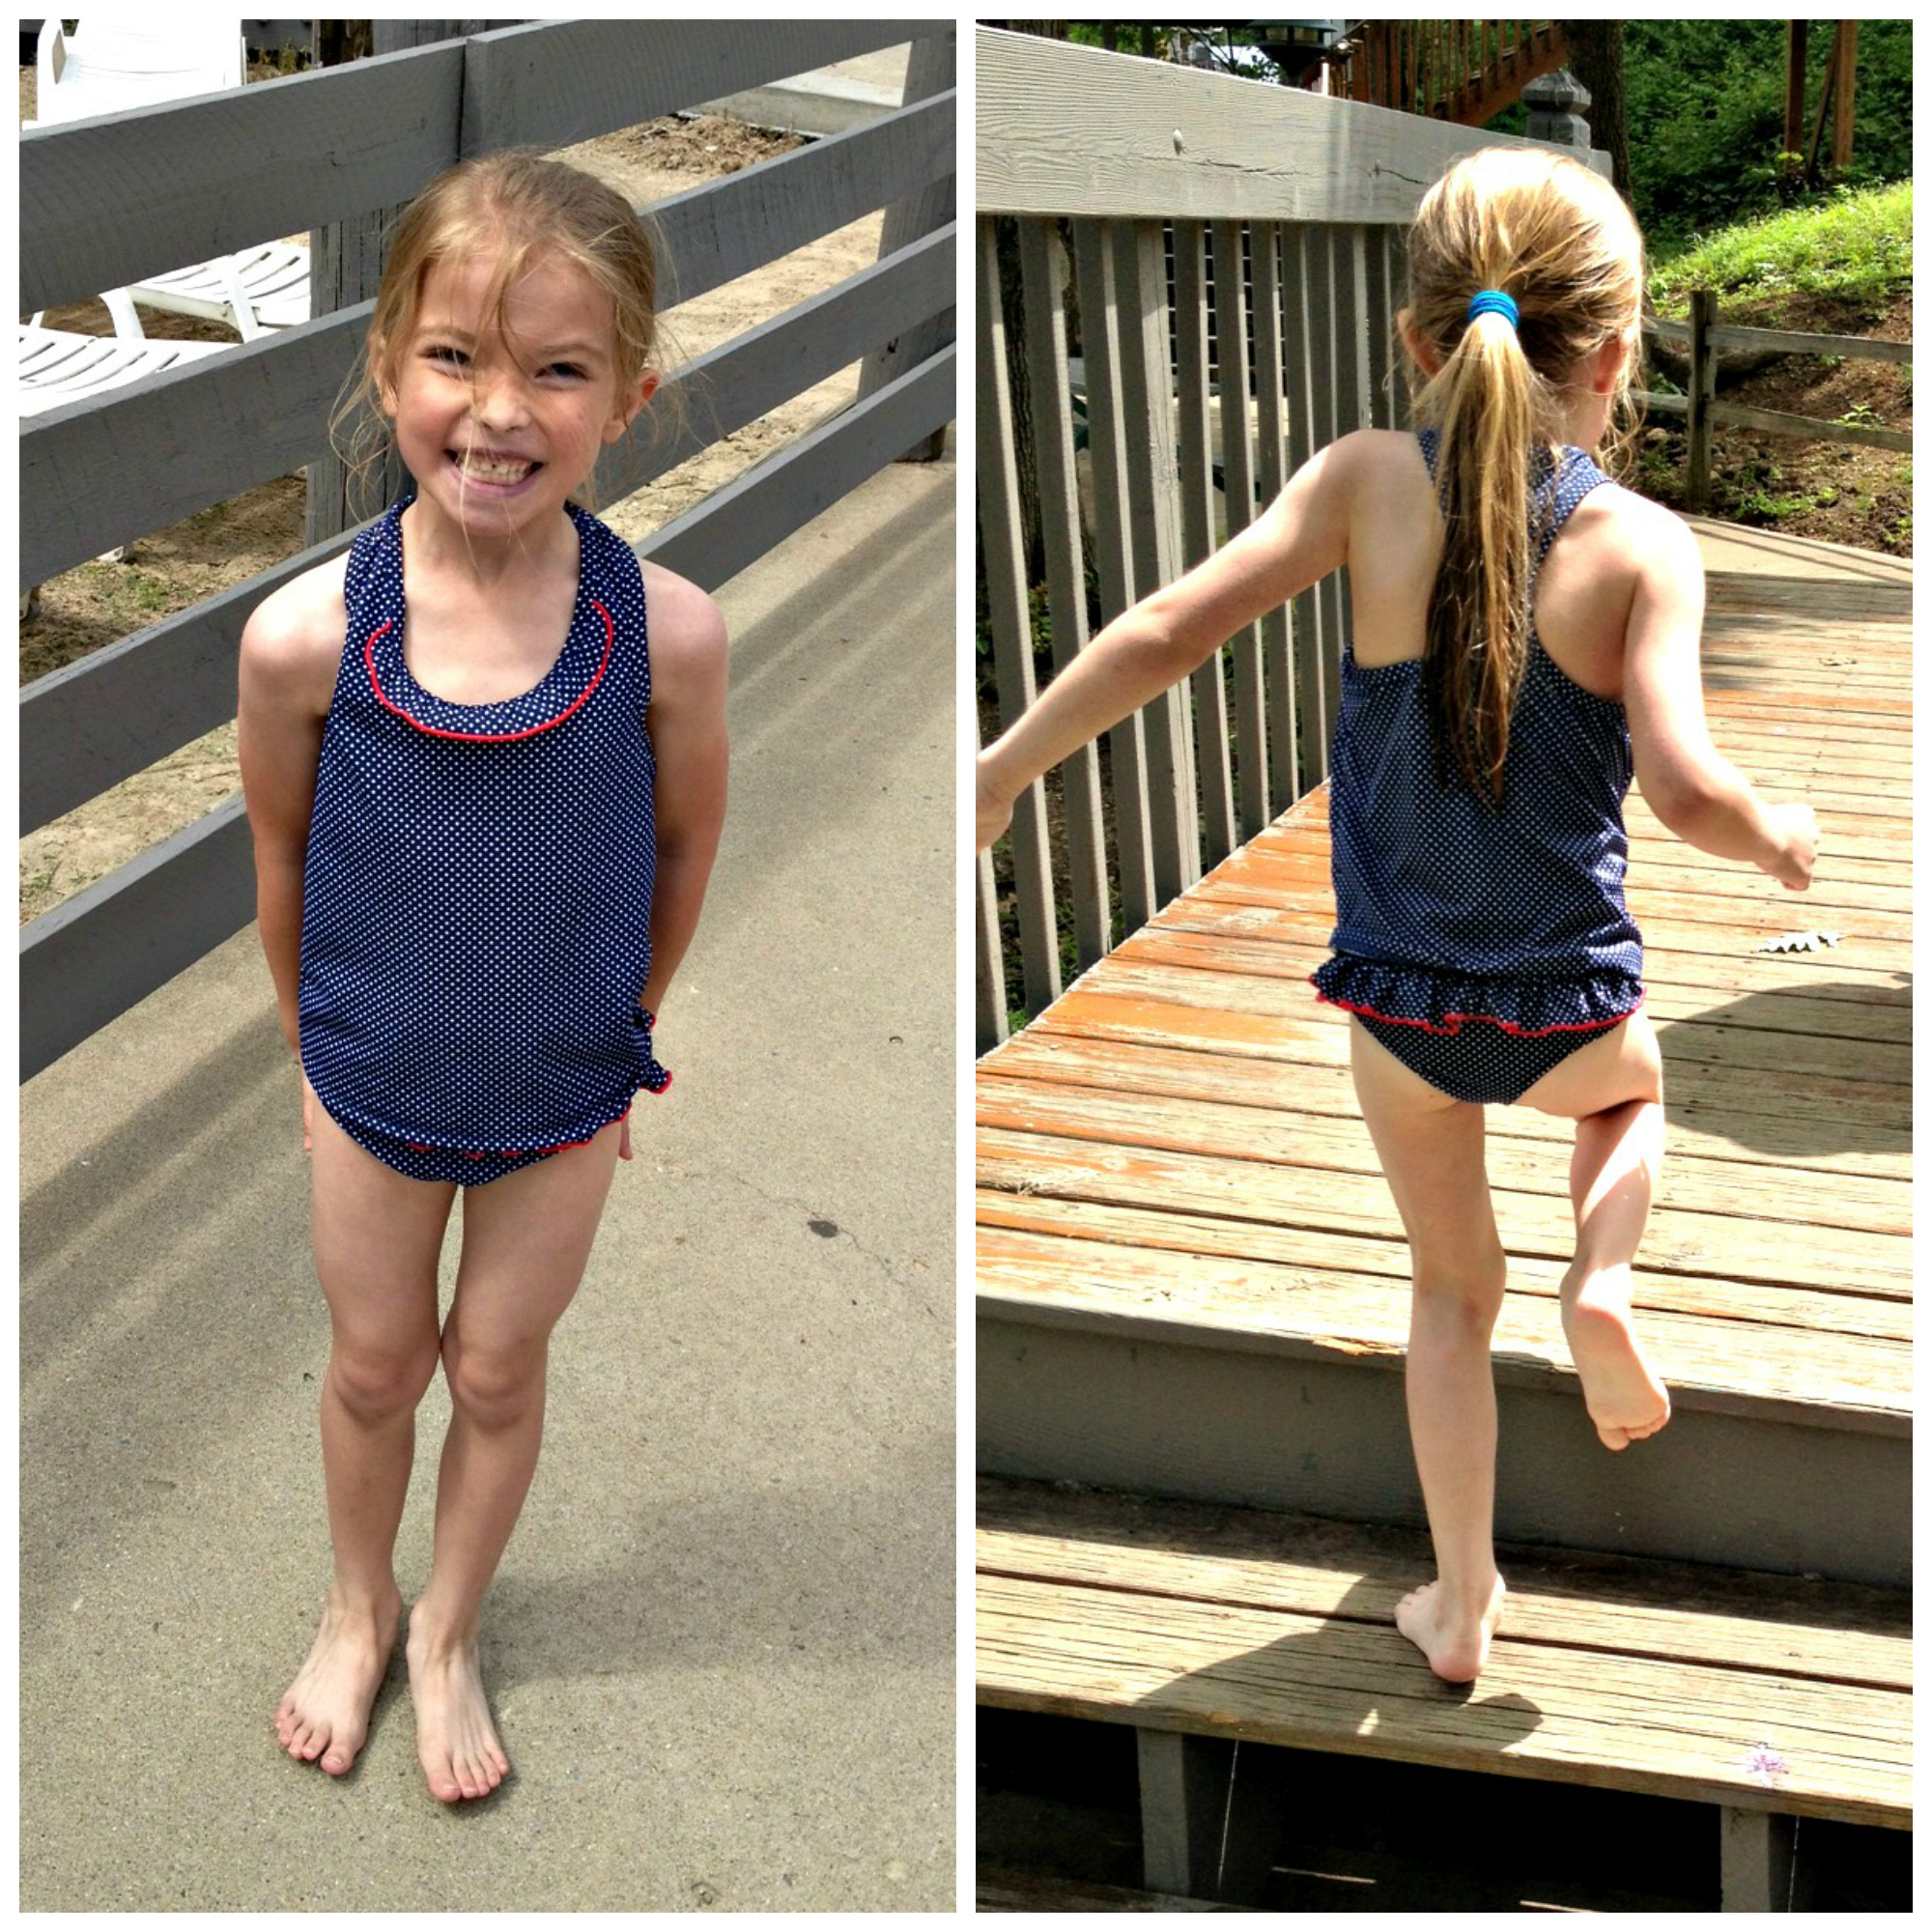 3bec5c2eed Lands' End Kids Swimsuits : Best.Suits.Ever! – Mommin' It Up!